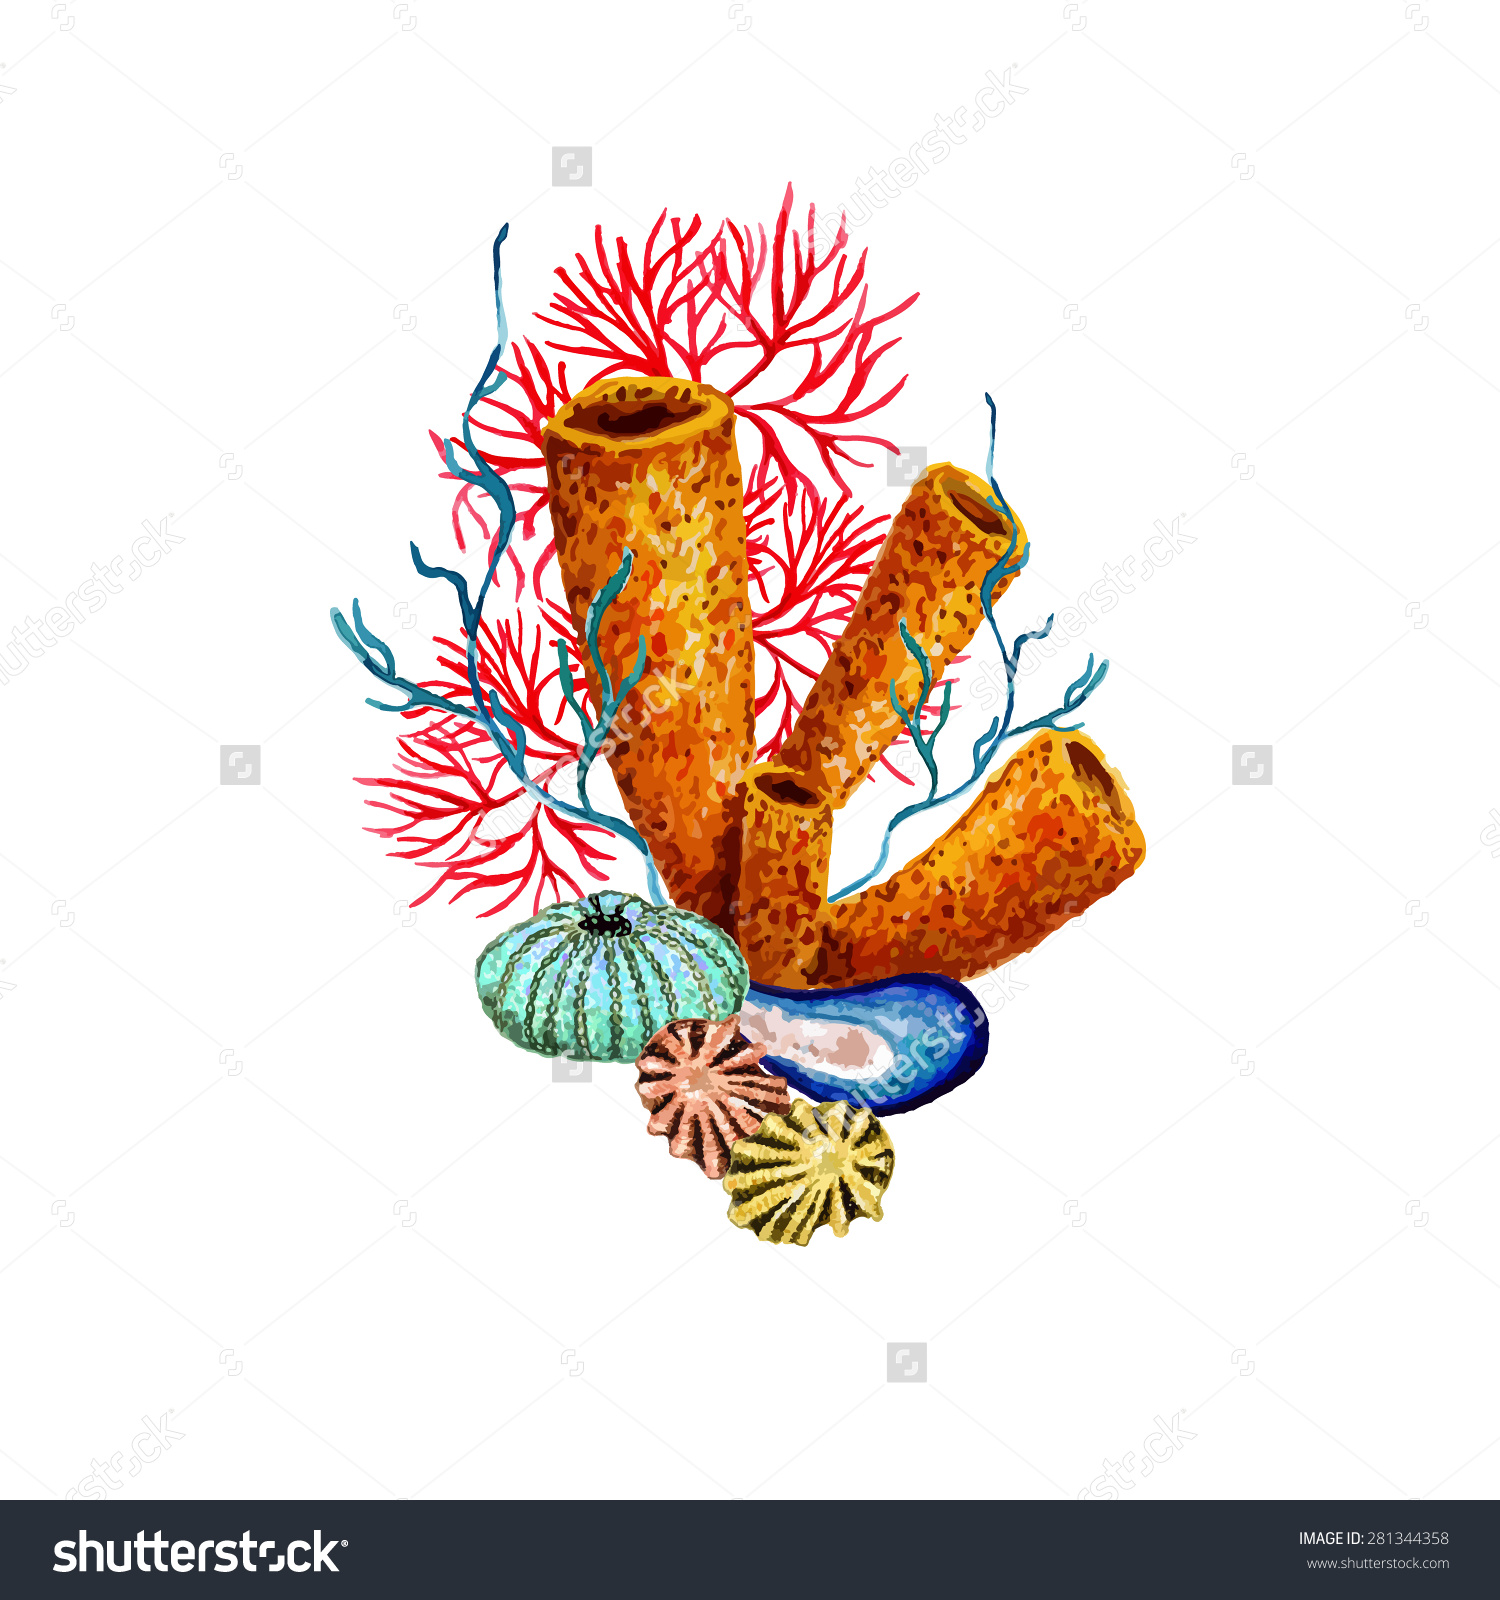 Watercolor Sponge Coral Sea Urchin Shell Stock Vector 281344358.